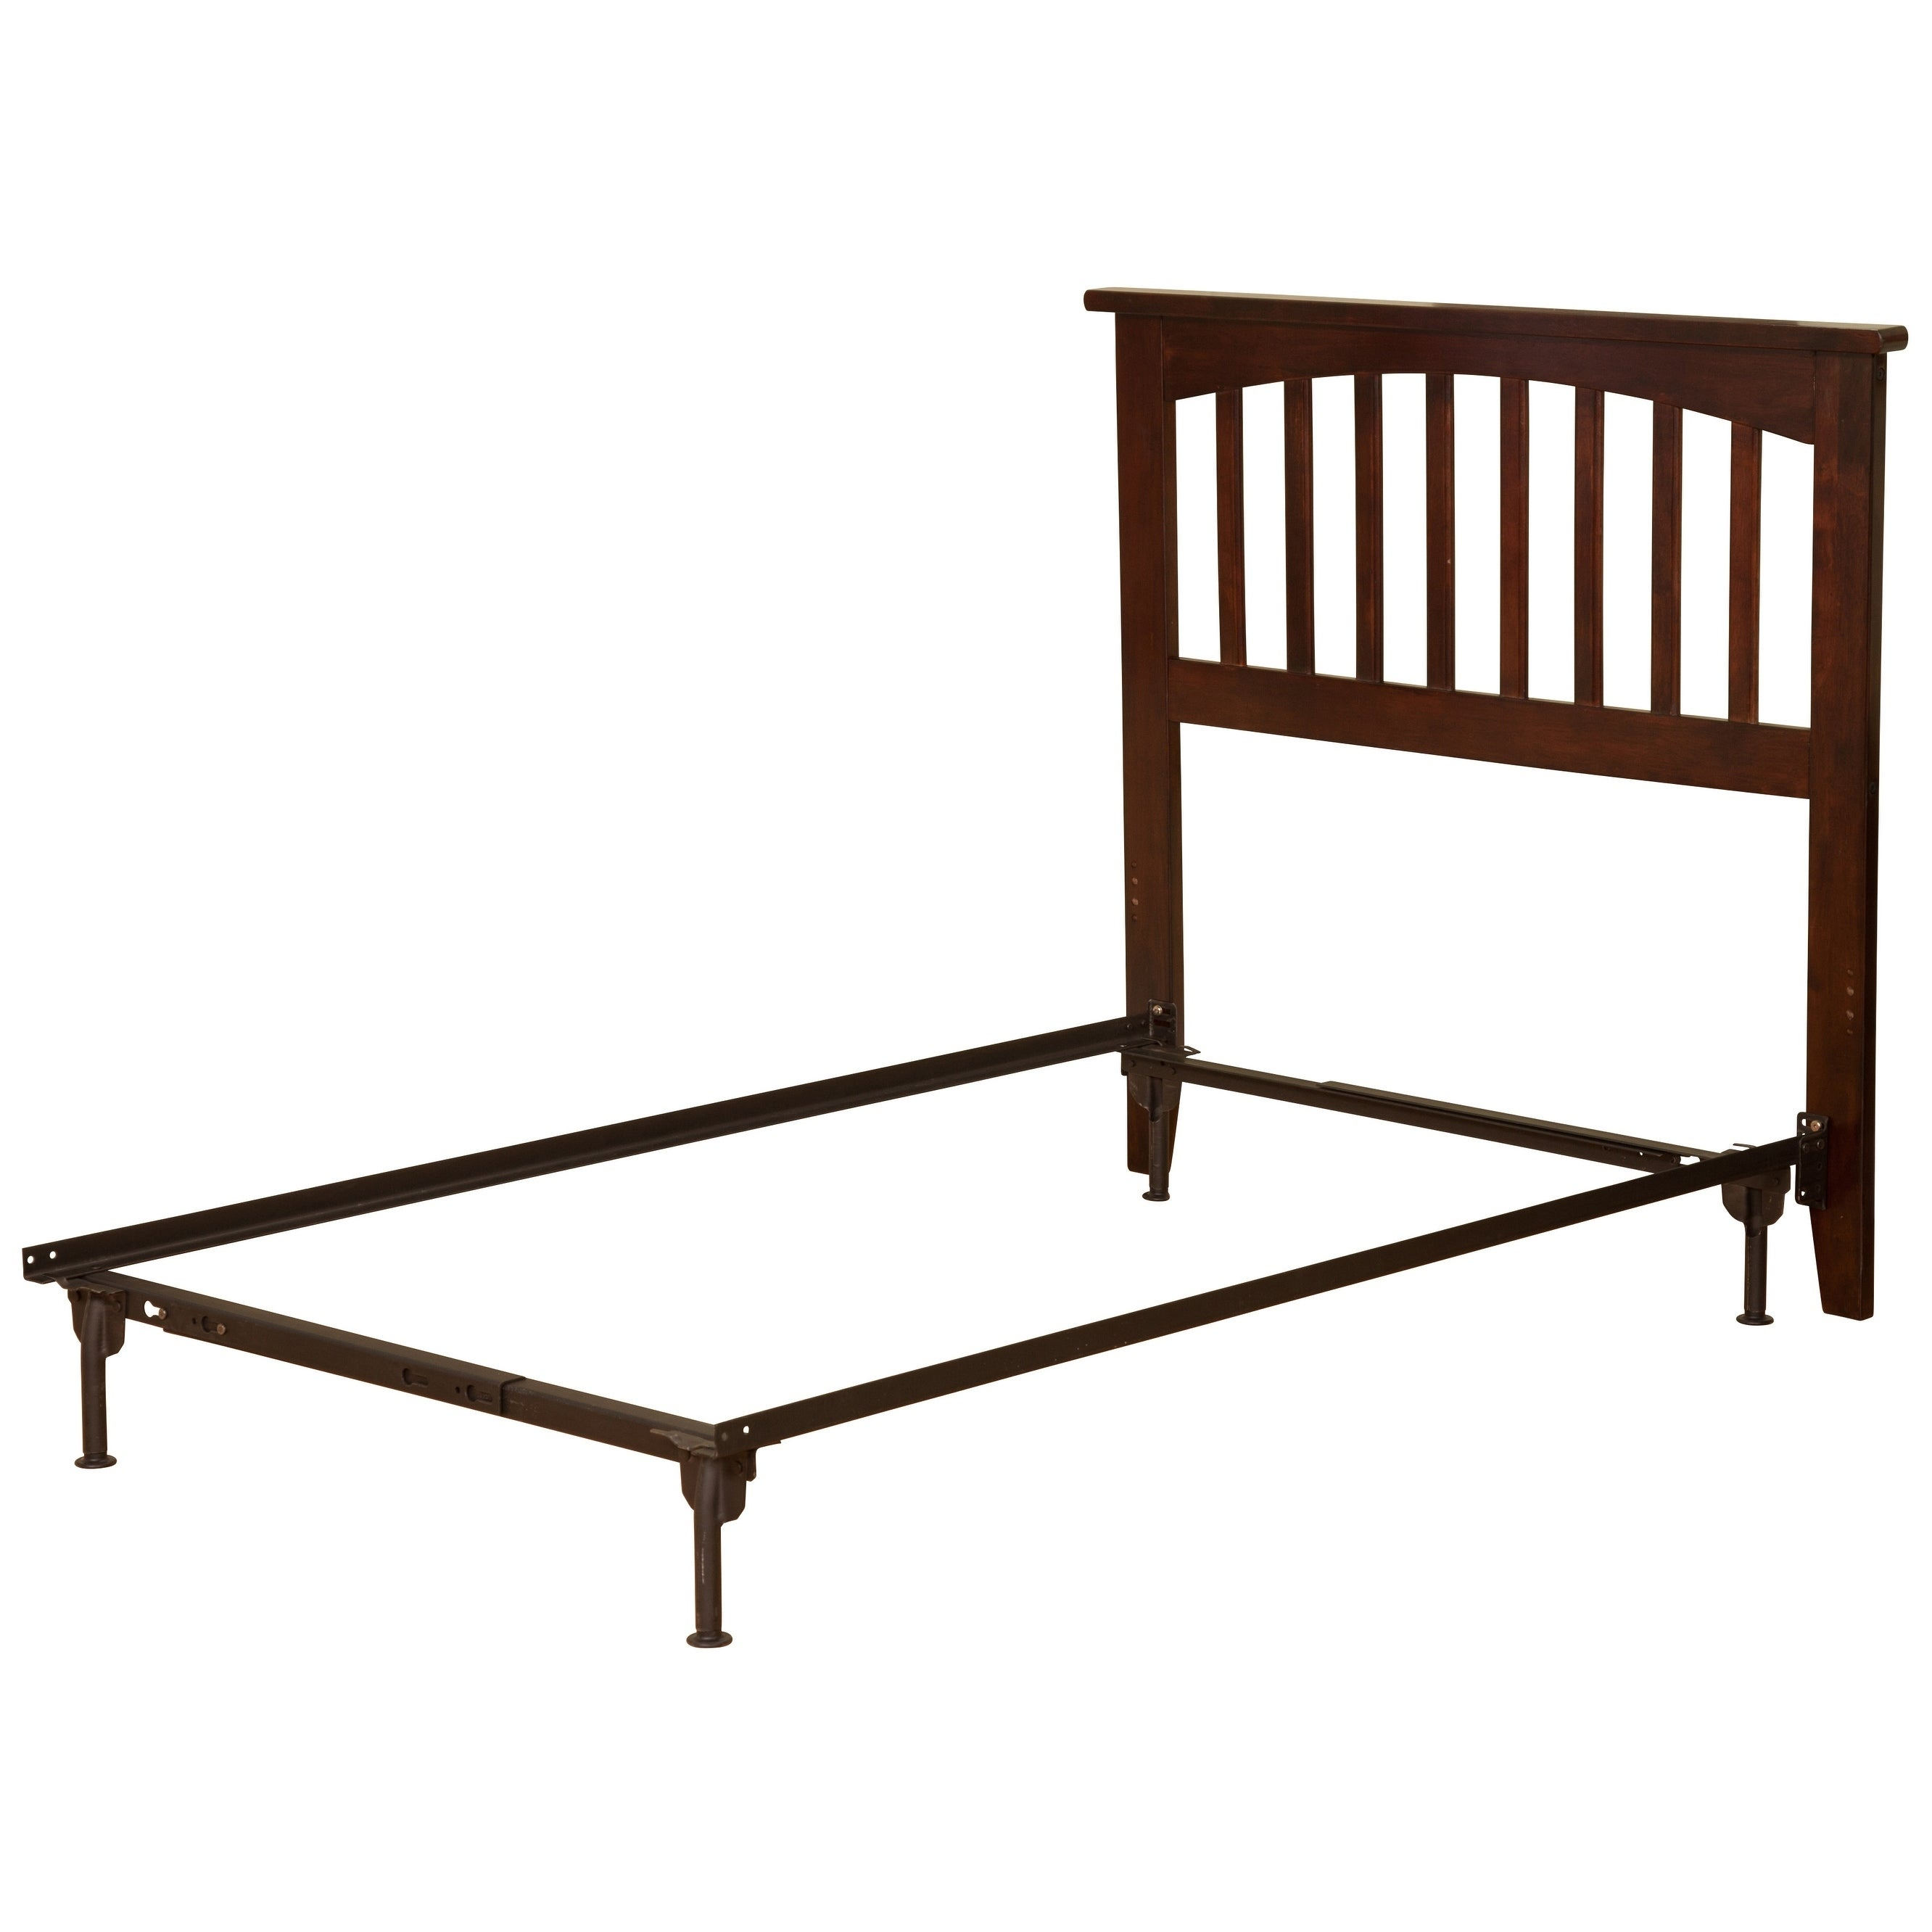 craftsman bed oak bedroom beds frame lively style plans shaker mission thomasville headboard